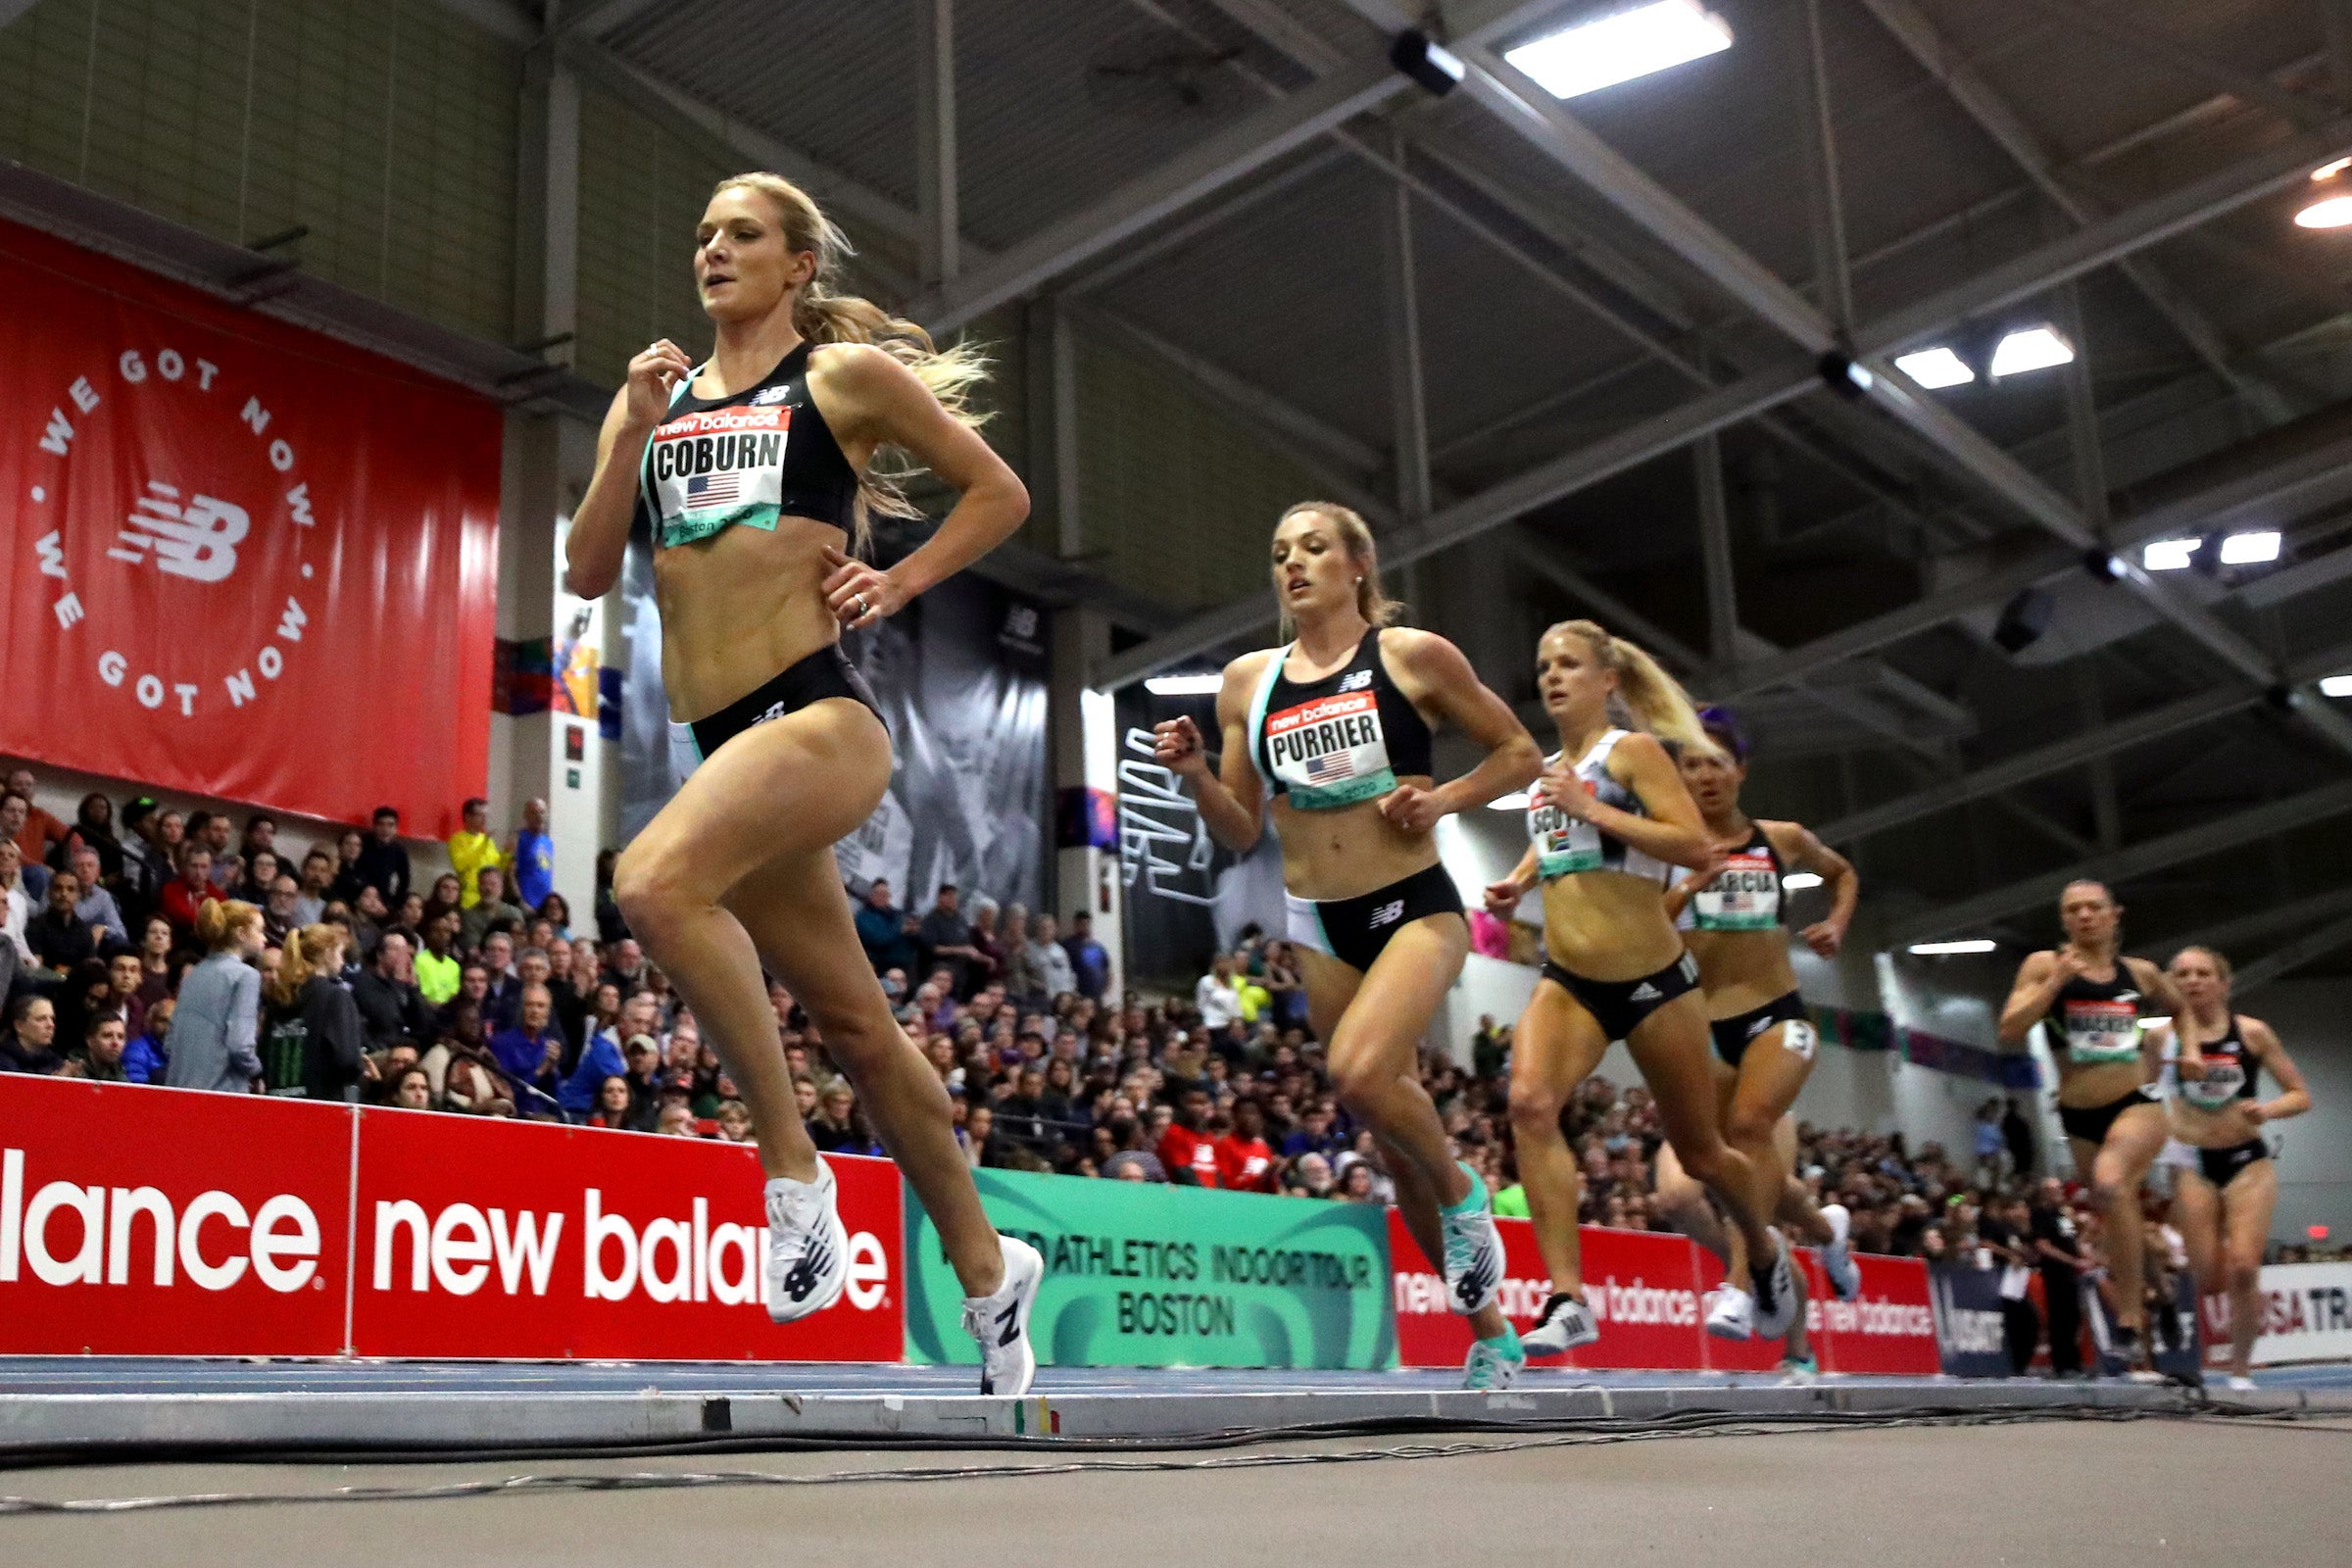 Emma Coburn in one of her last races before the pandemic